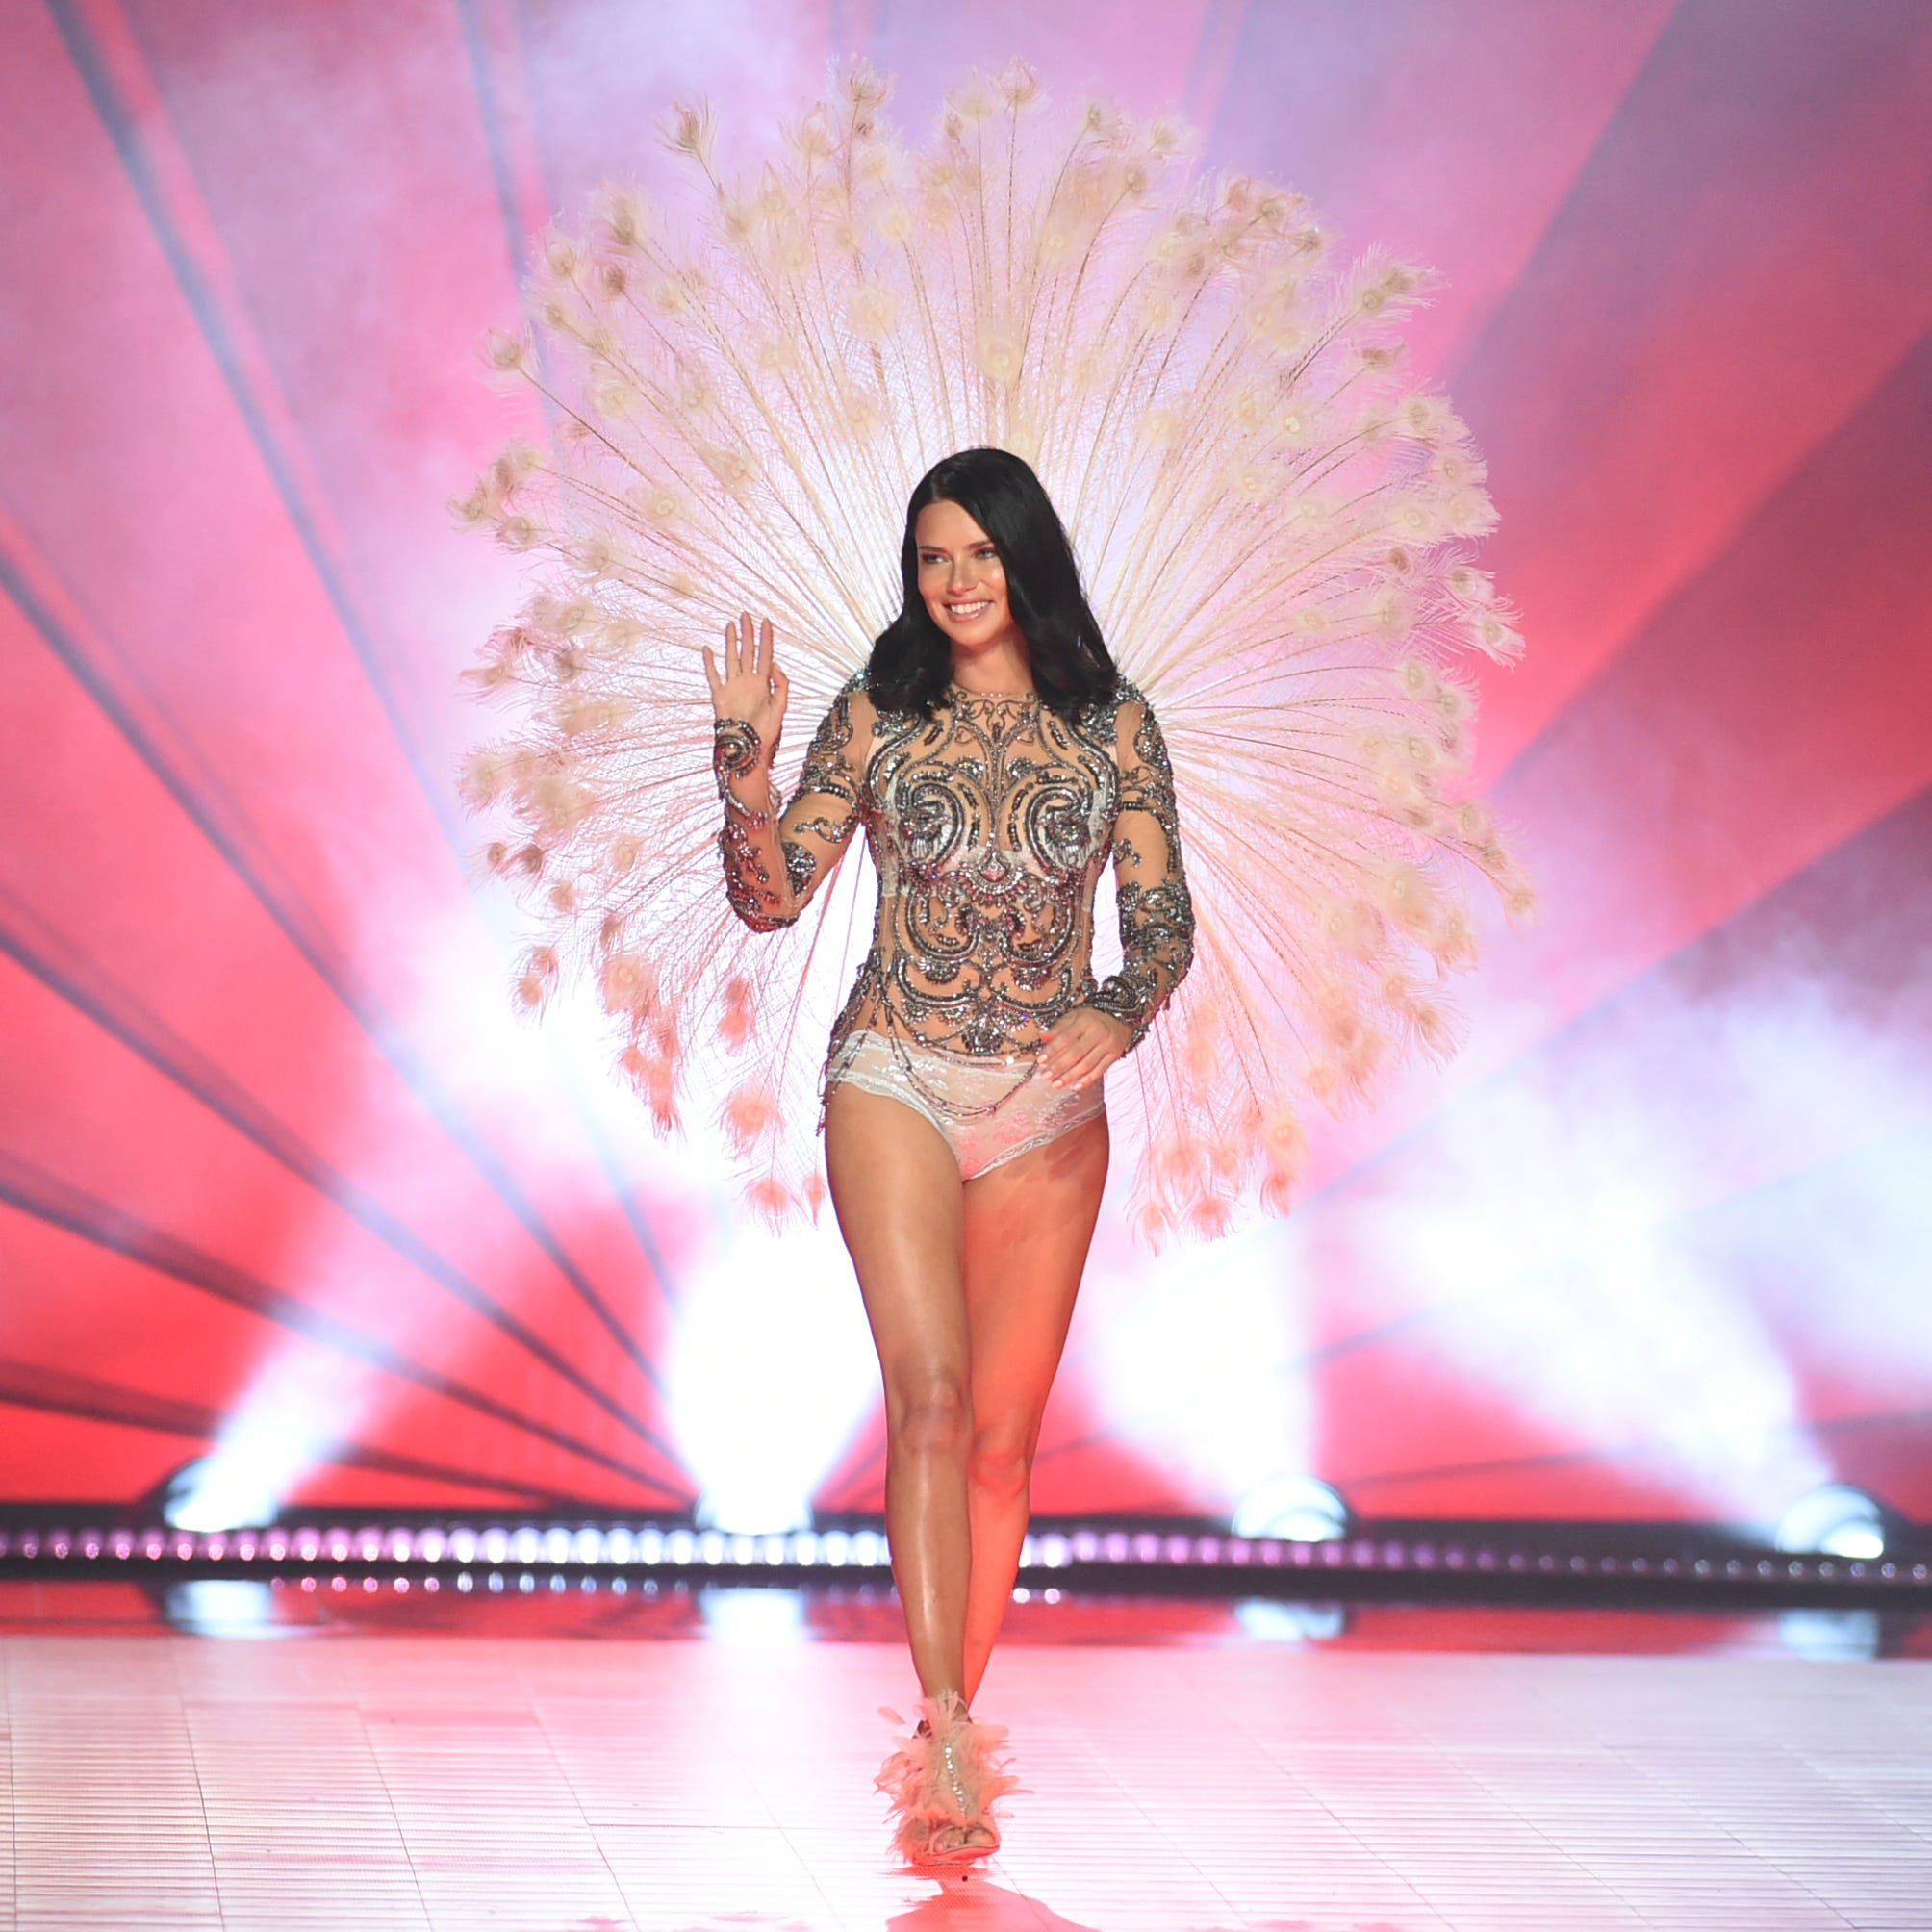 Adriana Lima waves to the audience as she walks the runway during the 2018 Victoria's Secret Fashion Show at Pier 94 on Thursday, Nov. 8, 2018, in New York. (Photo by Evan Agostini/Invision/AP) ORG XMIT: CAPM117